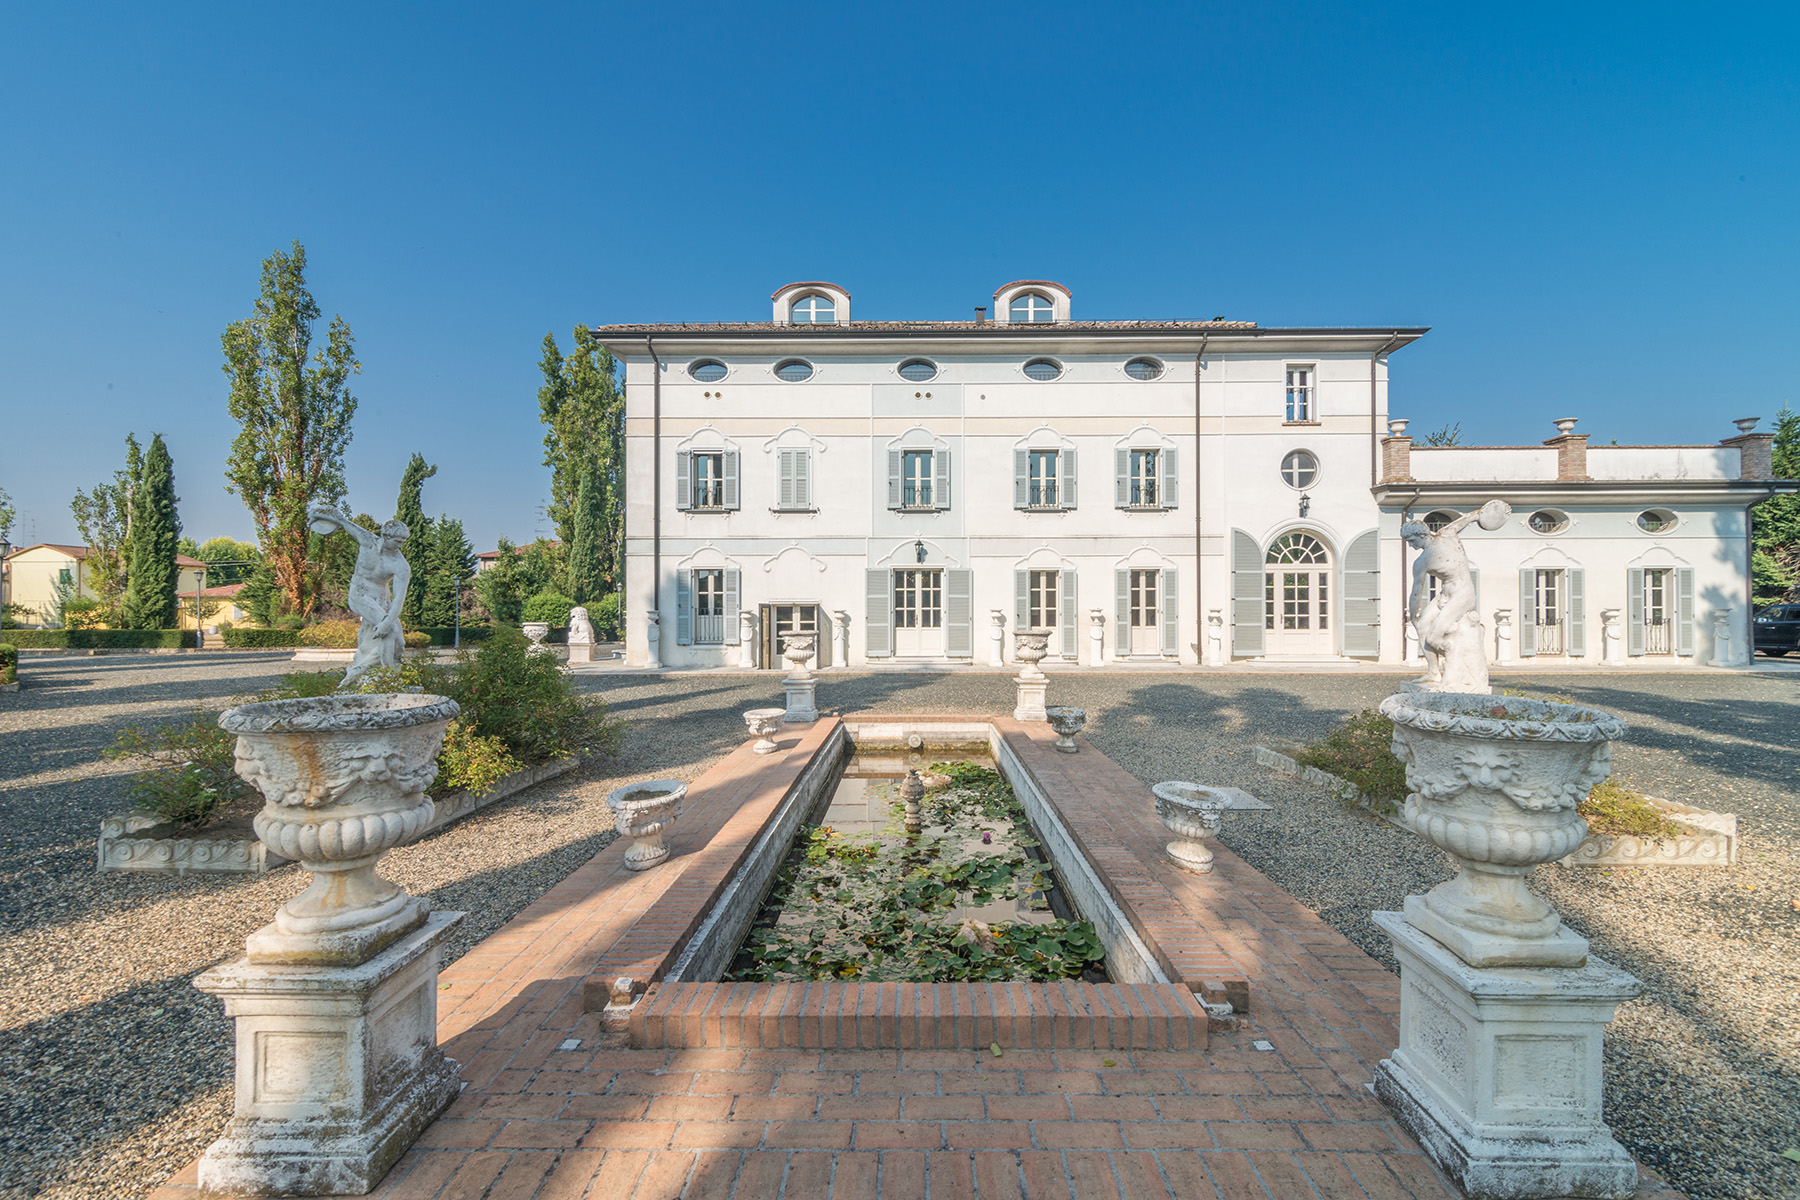 Additional photo for property listing at Charming Villa in a beautiful private park Via Massimo Tonelli Reggio Emilia, Reggio Emilia 42121 Italie